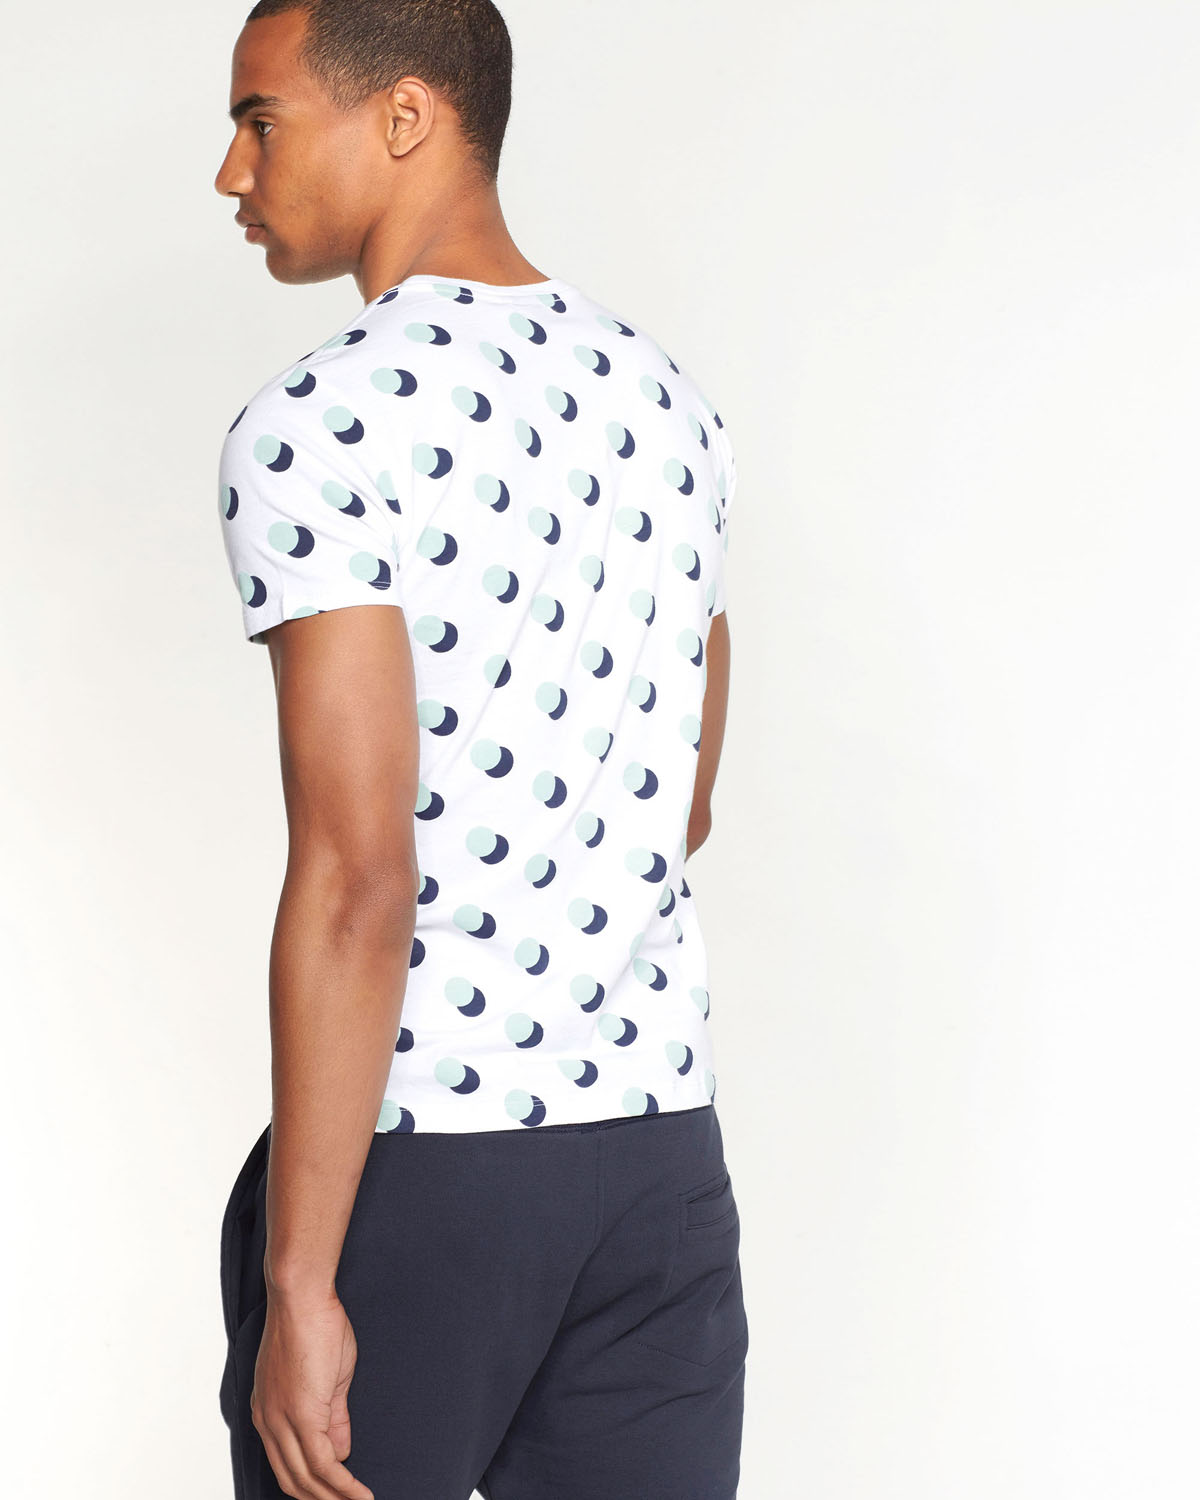 T SHIRT A POIS HOMME | 78871441 WE Fashion